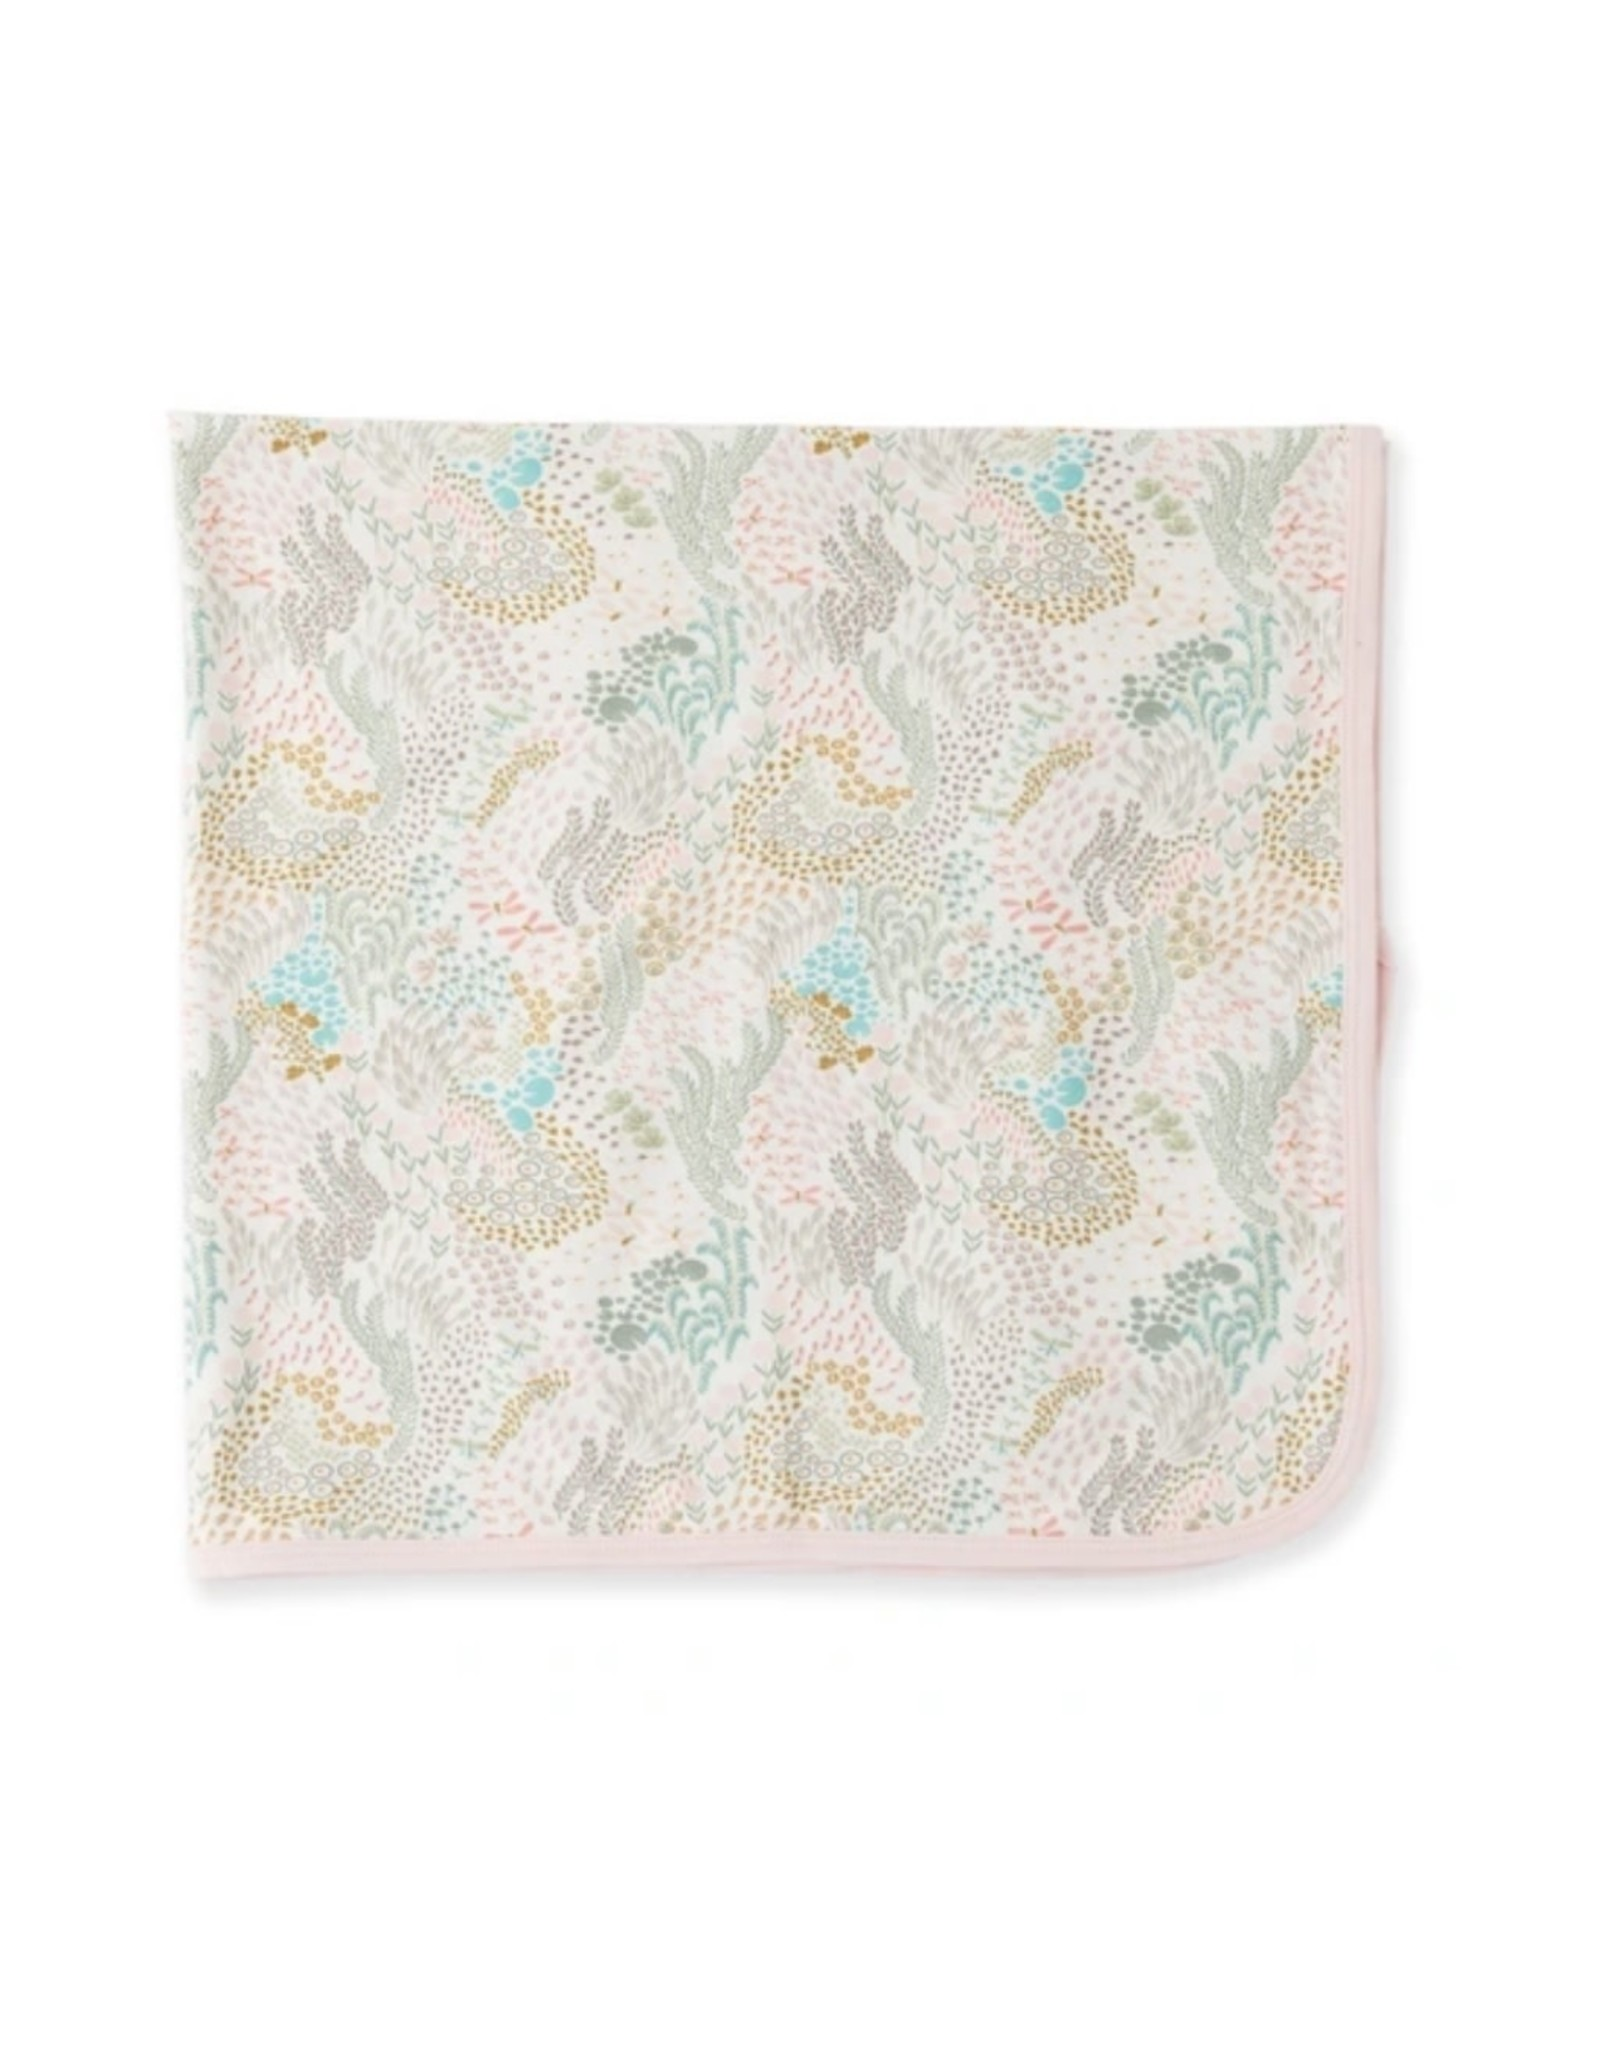 Magnetic Me Magnetic Me- Coral Cay Modal Swaddle